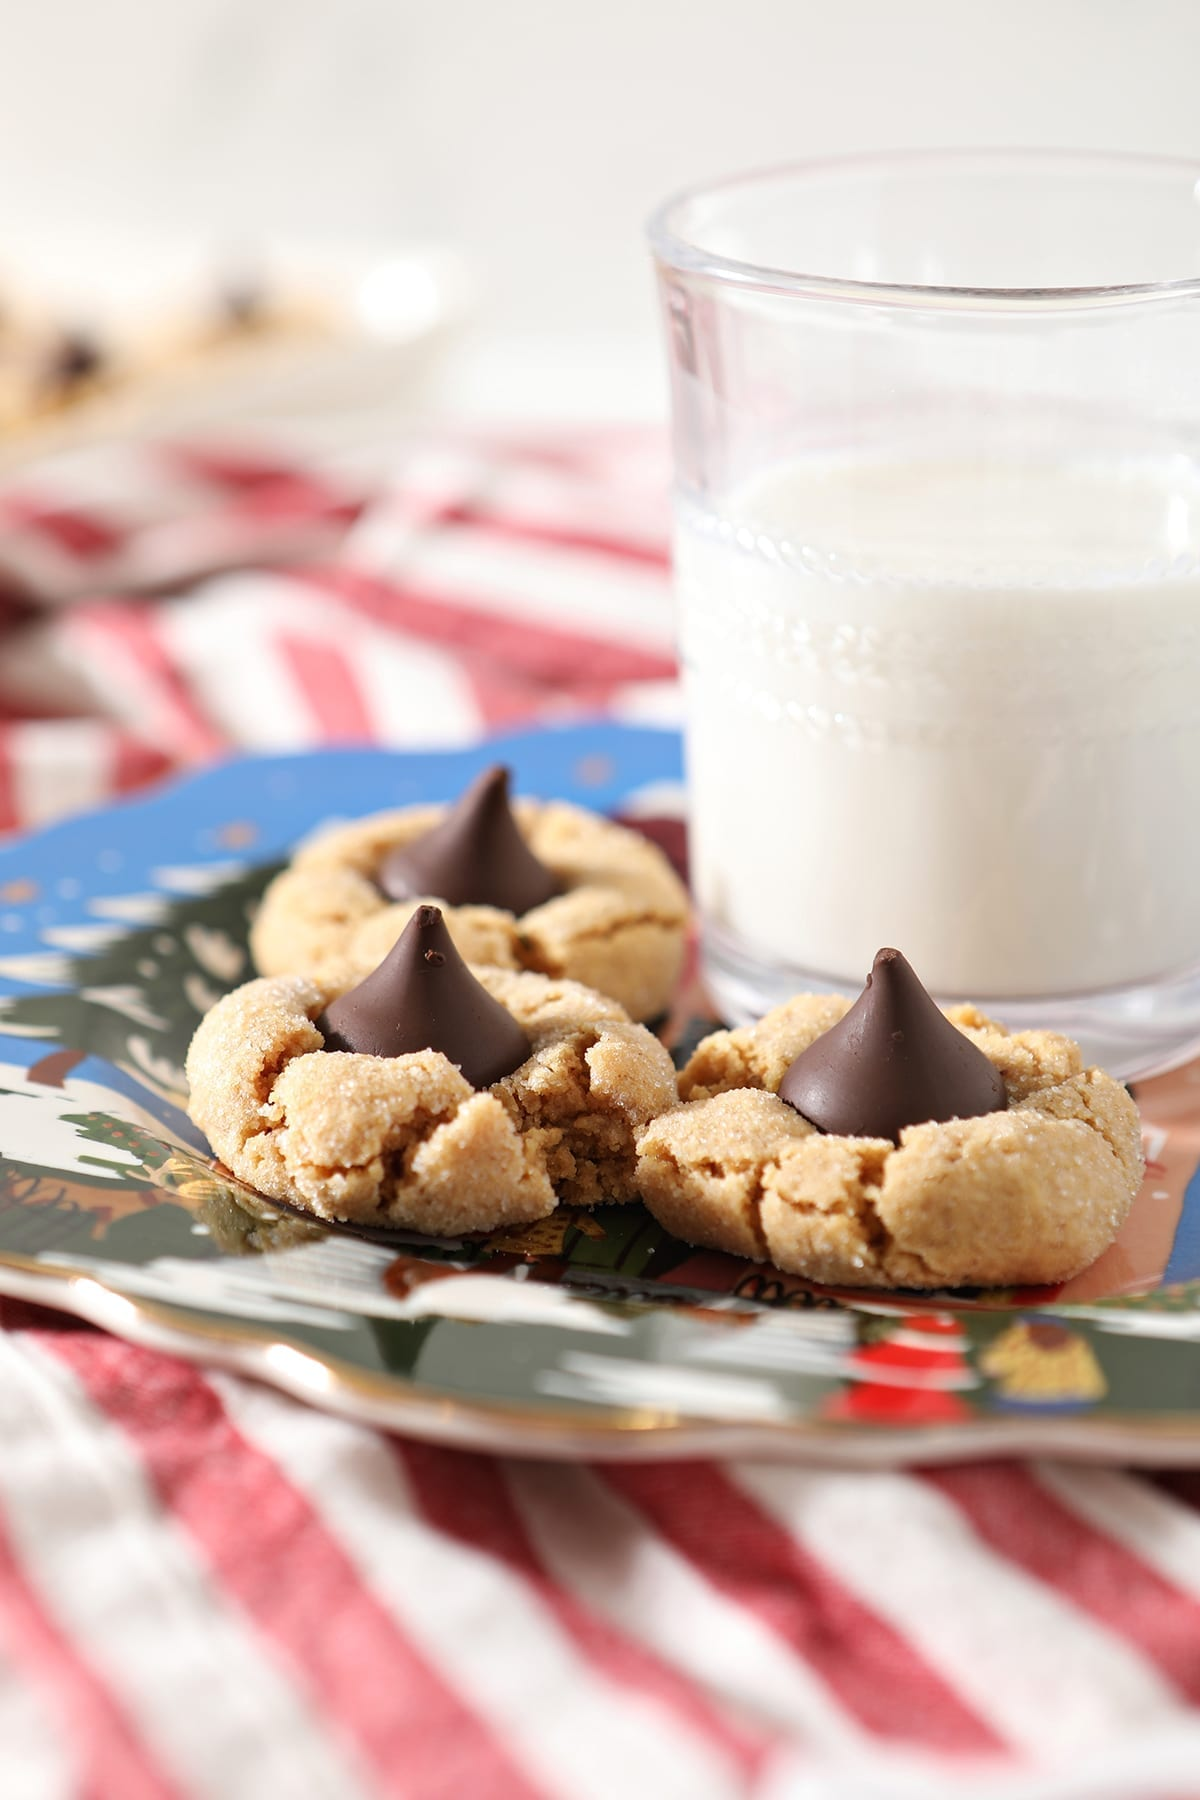 Three Dark Chocolate Peanut Blossoms sit on a blue painted plate next to a glass of milk on top of a red and white striped towel